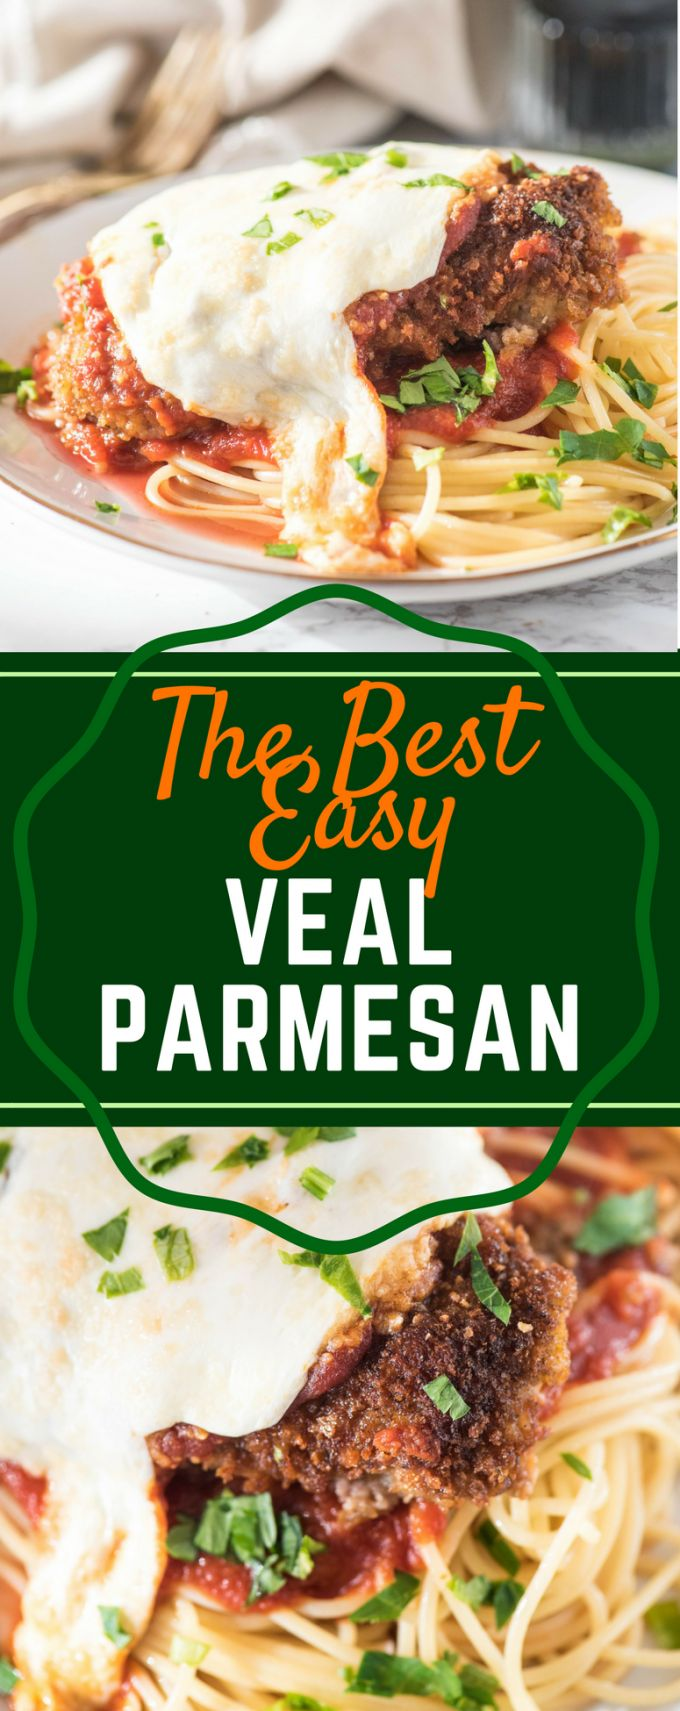 This is the BEST easy Veal Parmesan recipe! Pan fried and then baked to perfection, this recipe could not be more simple. Parmigiana is a fast weeknight meal that is authentic Italian! #vealparmesan #vealparmigiana #authenticitalianrecipes #easyweeknightdinners #gogogogourmet